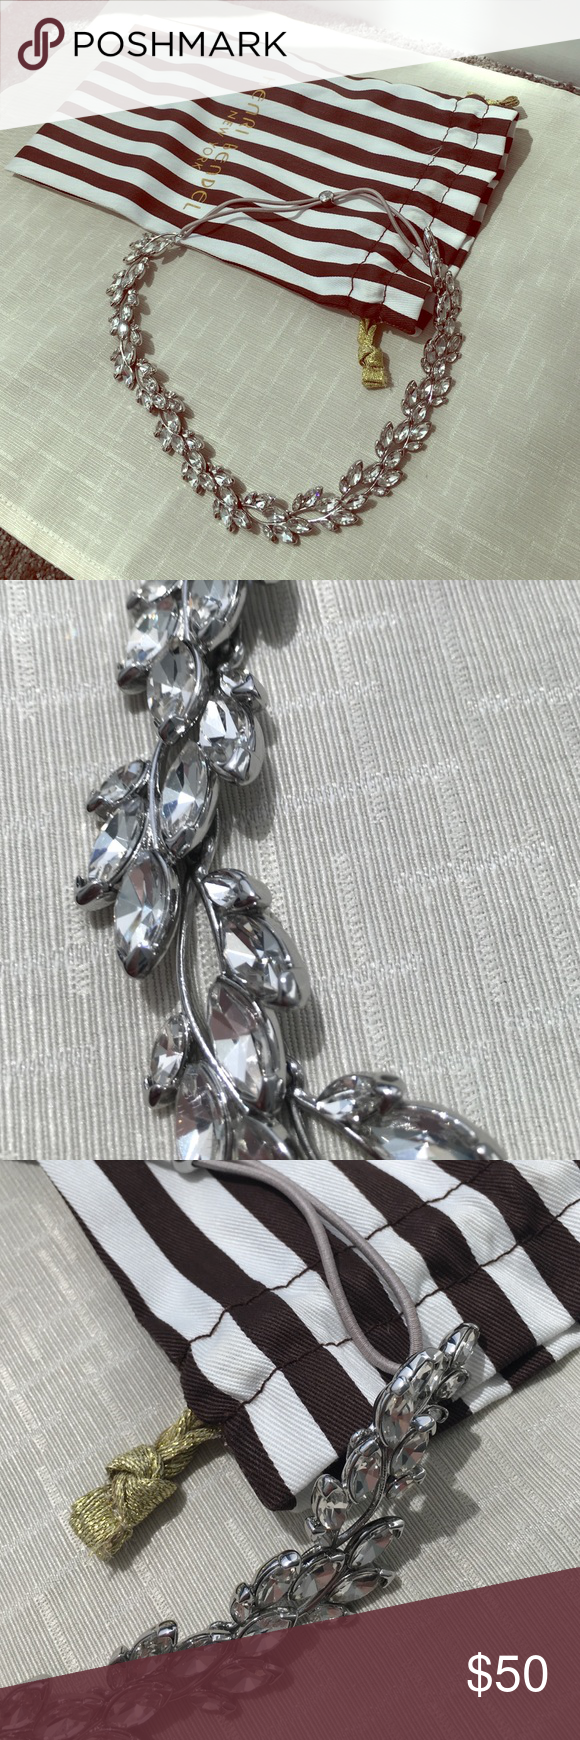 Henri Bendel Headband Tiara This headband/wrap has crystal detail leaves and an elastic band at the back to secure in place. Would look stunning for a bride or prom. Comes with Henri Bendel striped pouch. Worn once. henri bendel Accessories Hair Accessories